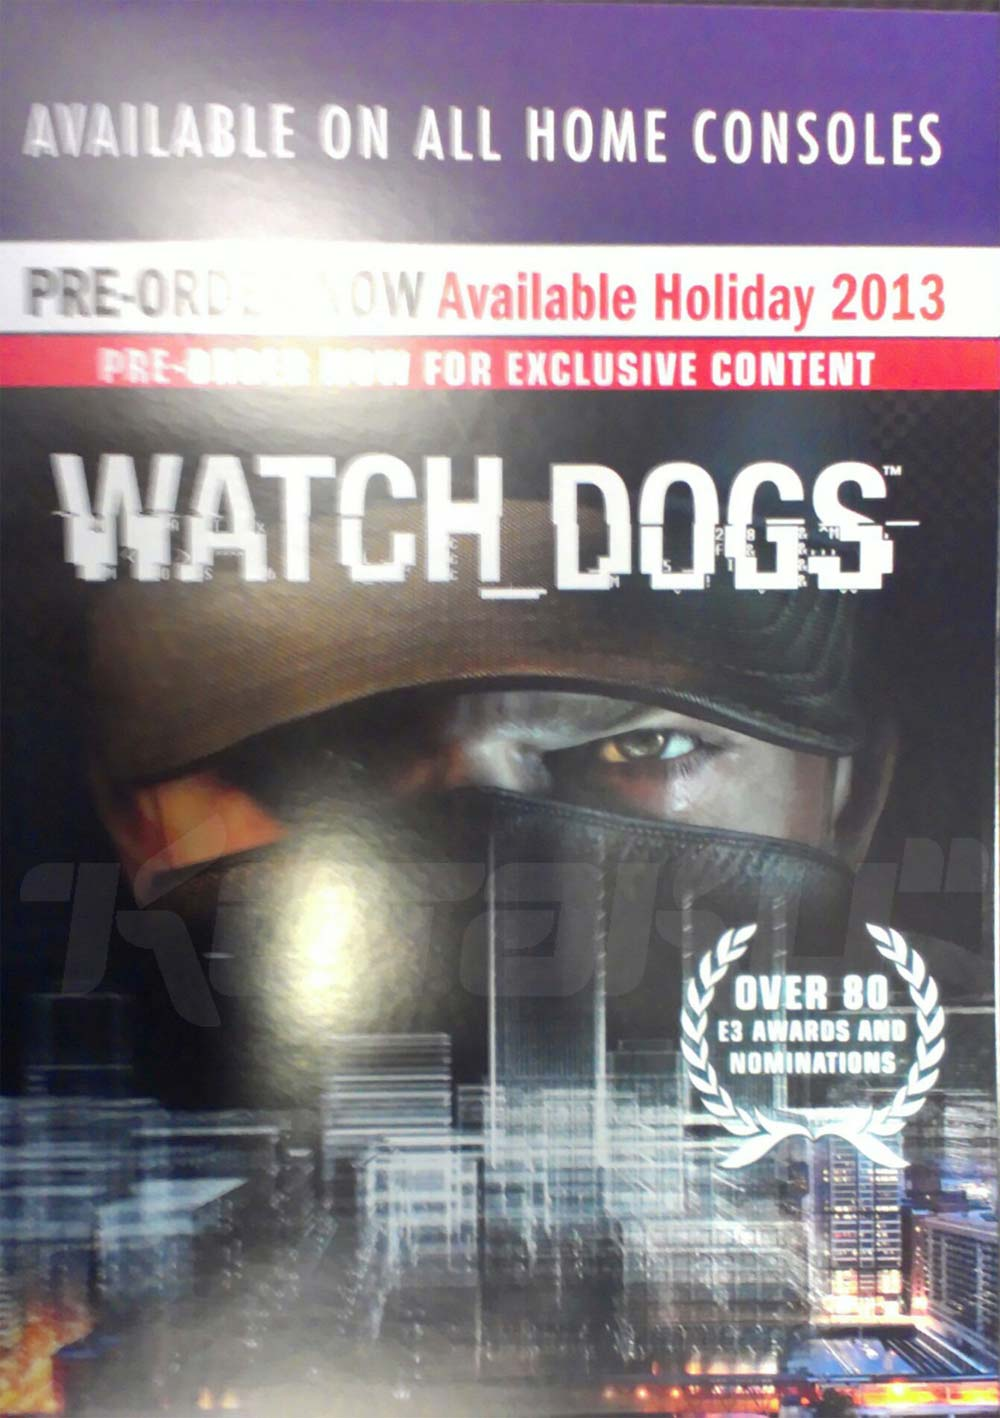 Watch Dogs promotional material